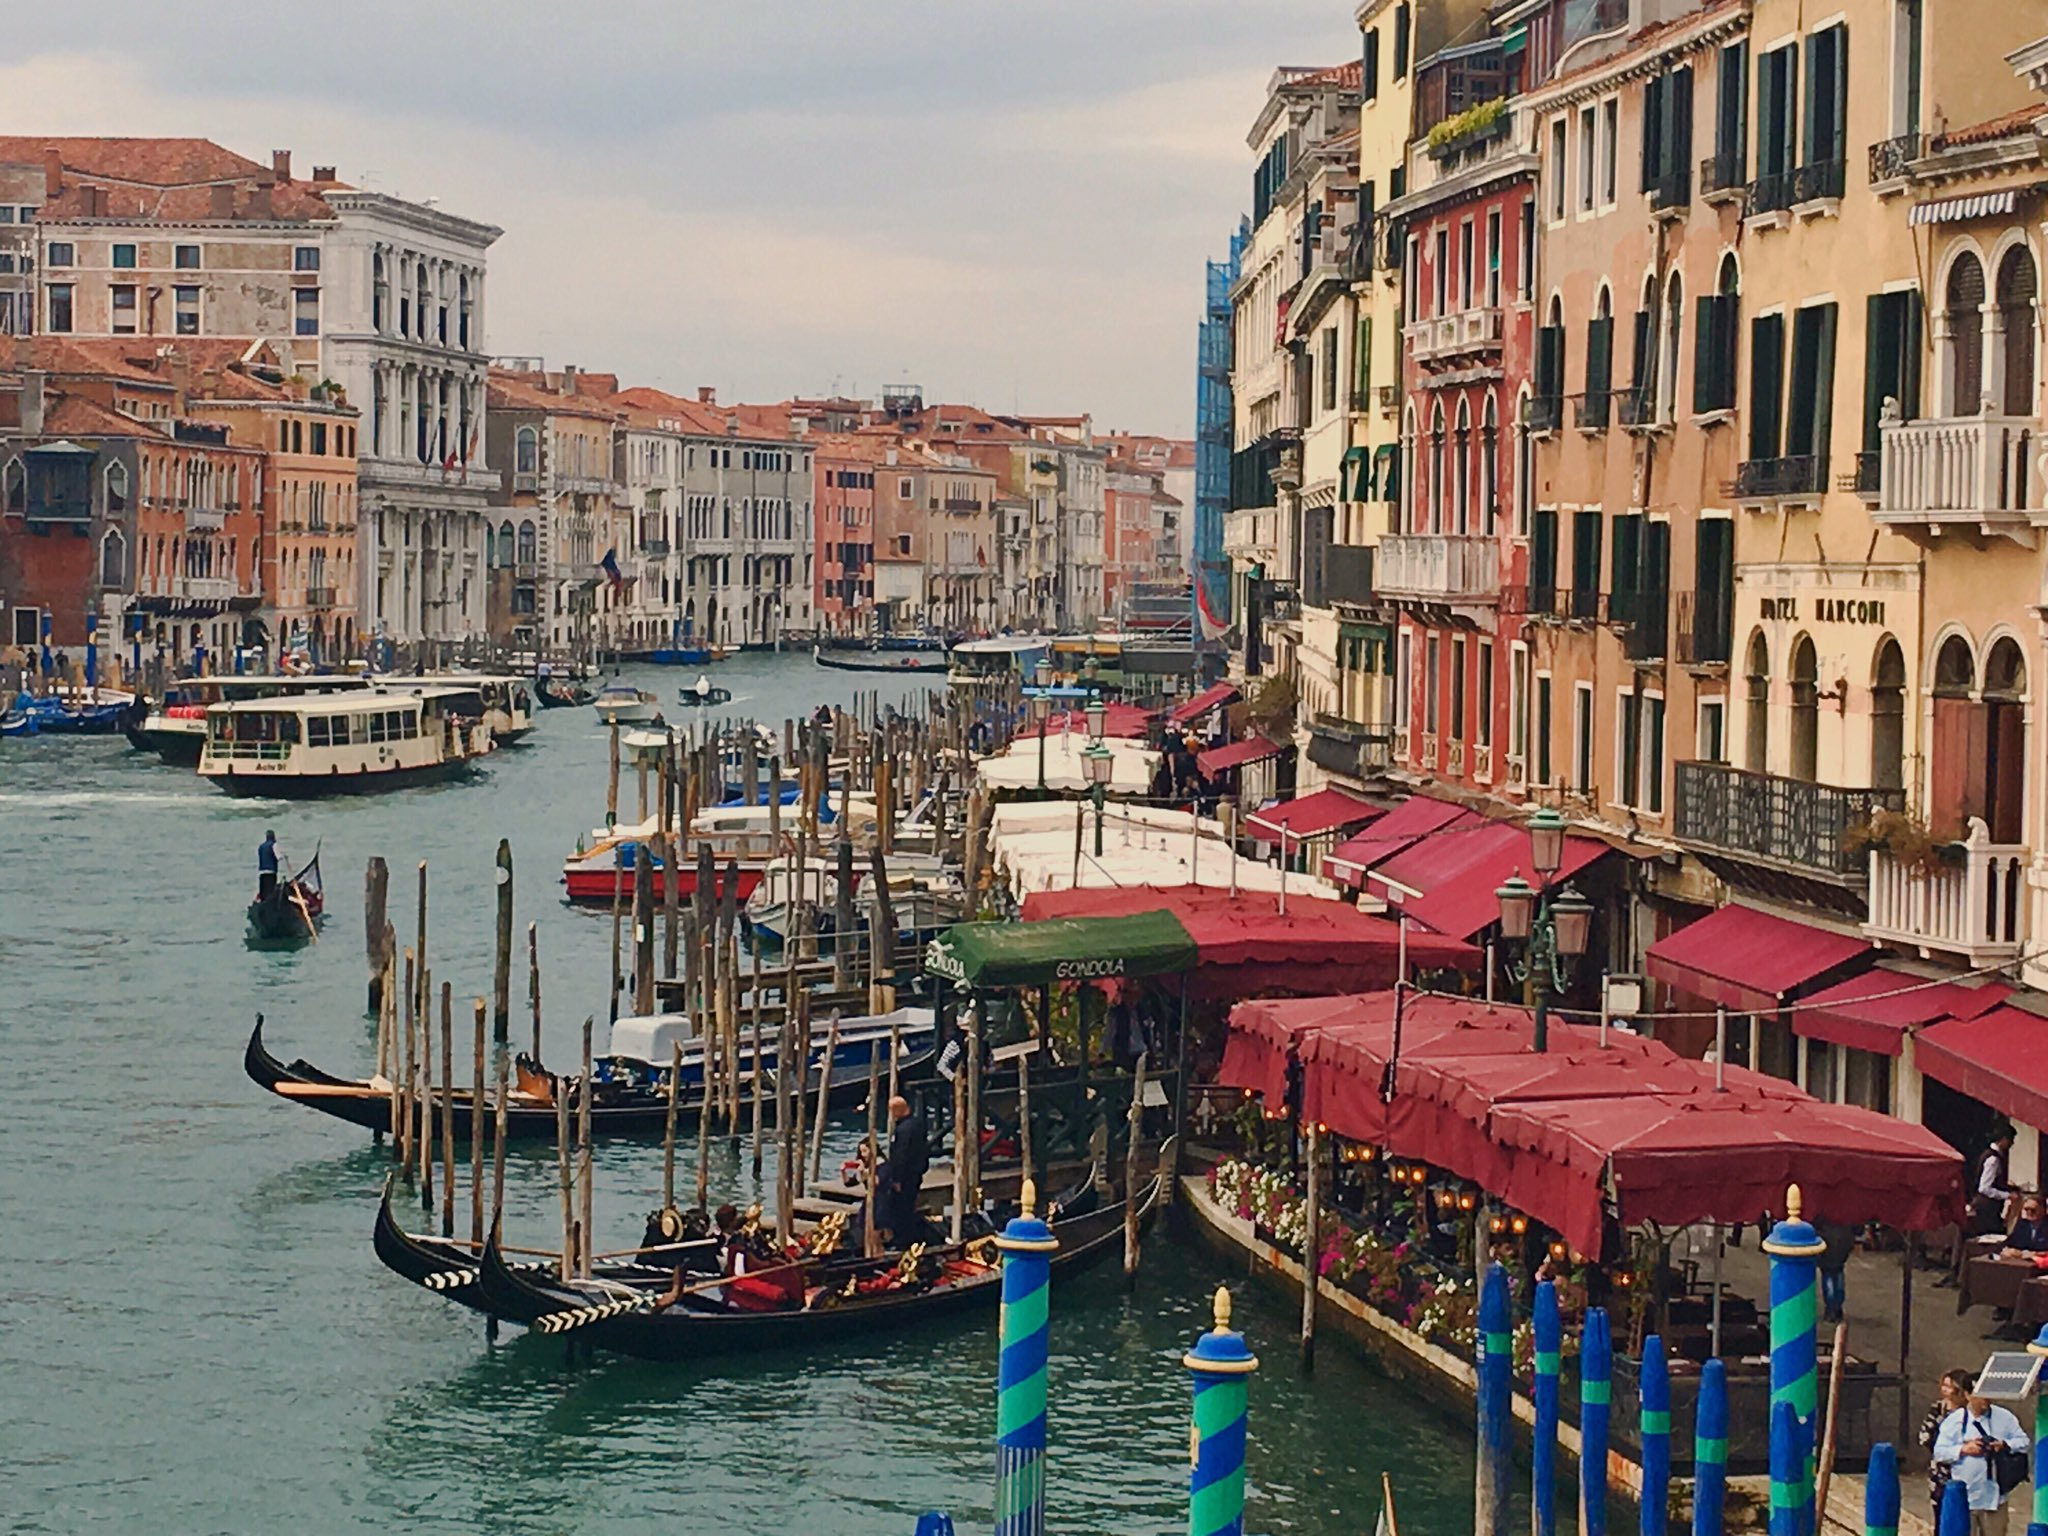 Odyssey Italy 2018, The Grand Canal of Venice. https://t.co/mBZuw6jJ4q